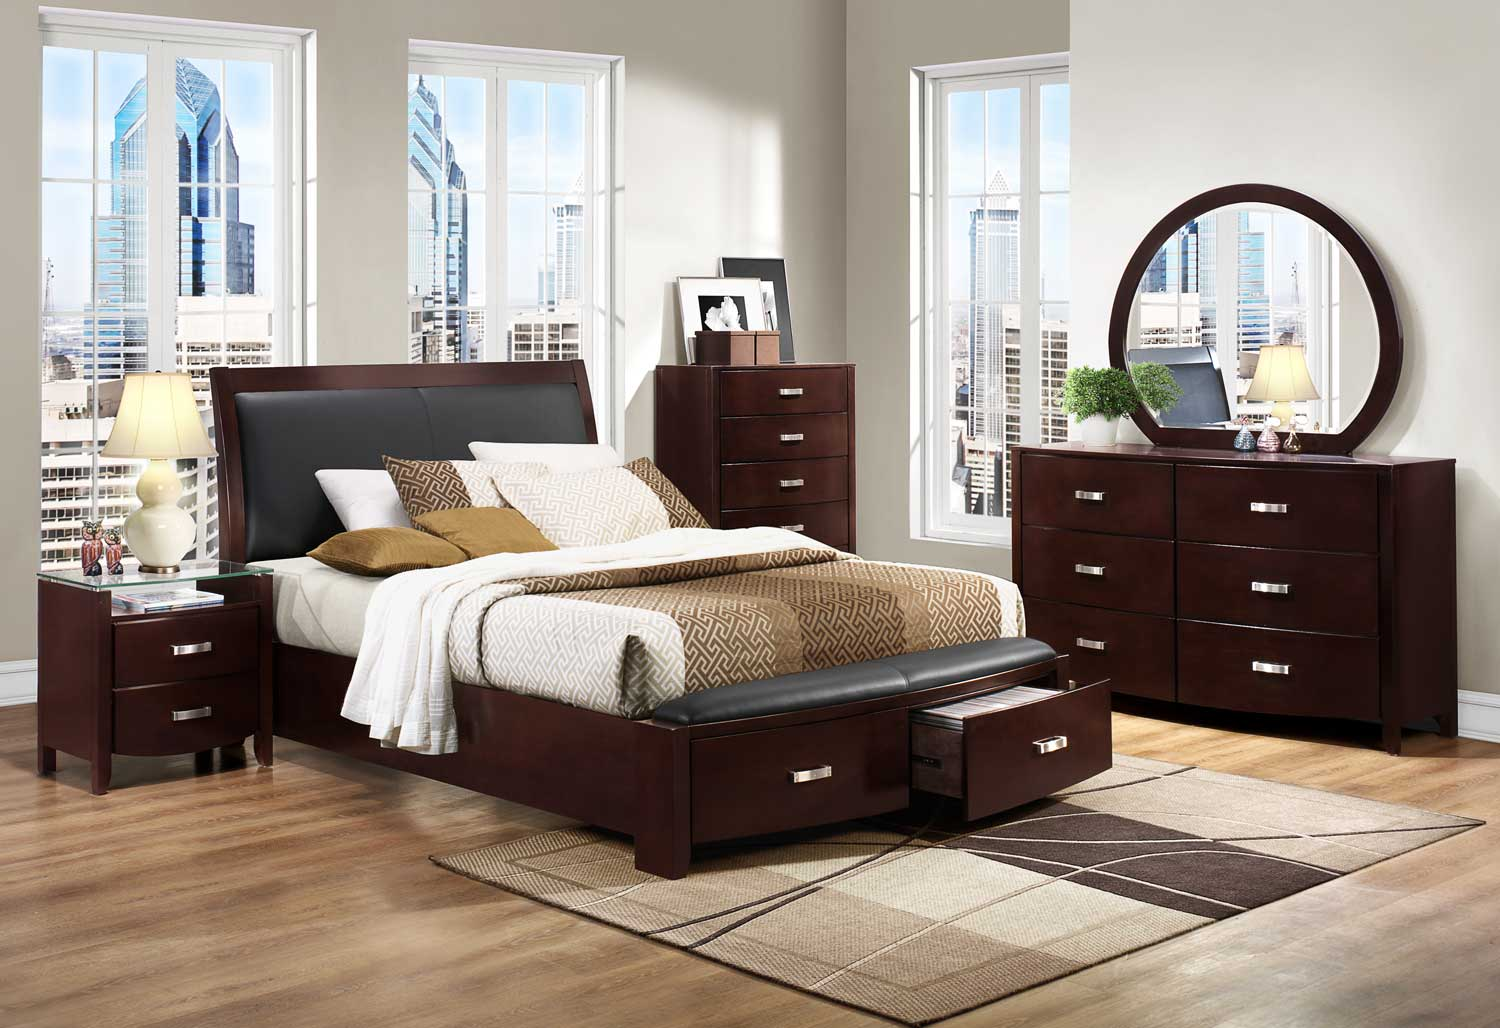 Homelegance lyric platform bedroom set dark espresso for Bedroom sets with mattress included